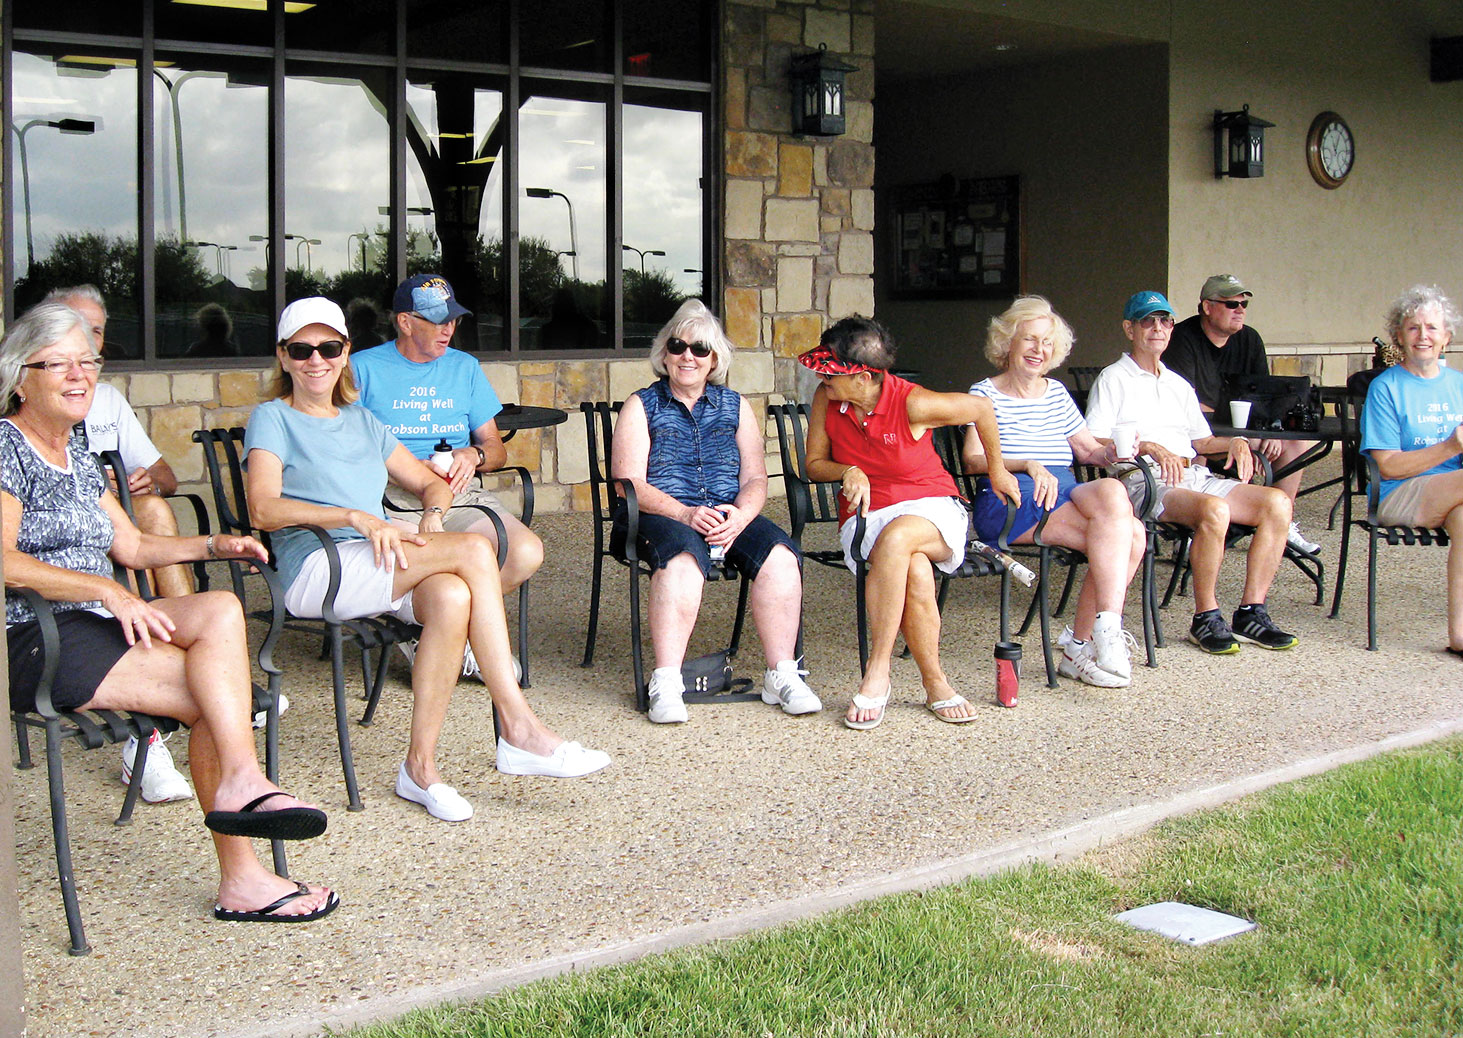 The gallery watching from the Fitness Center patio